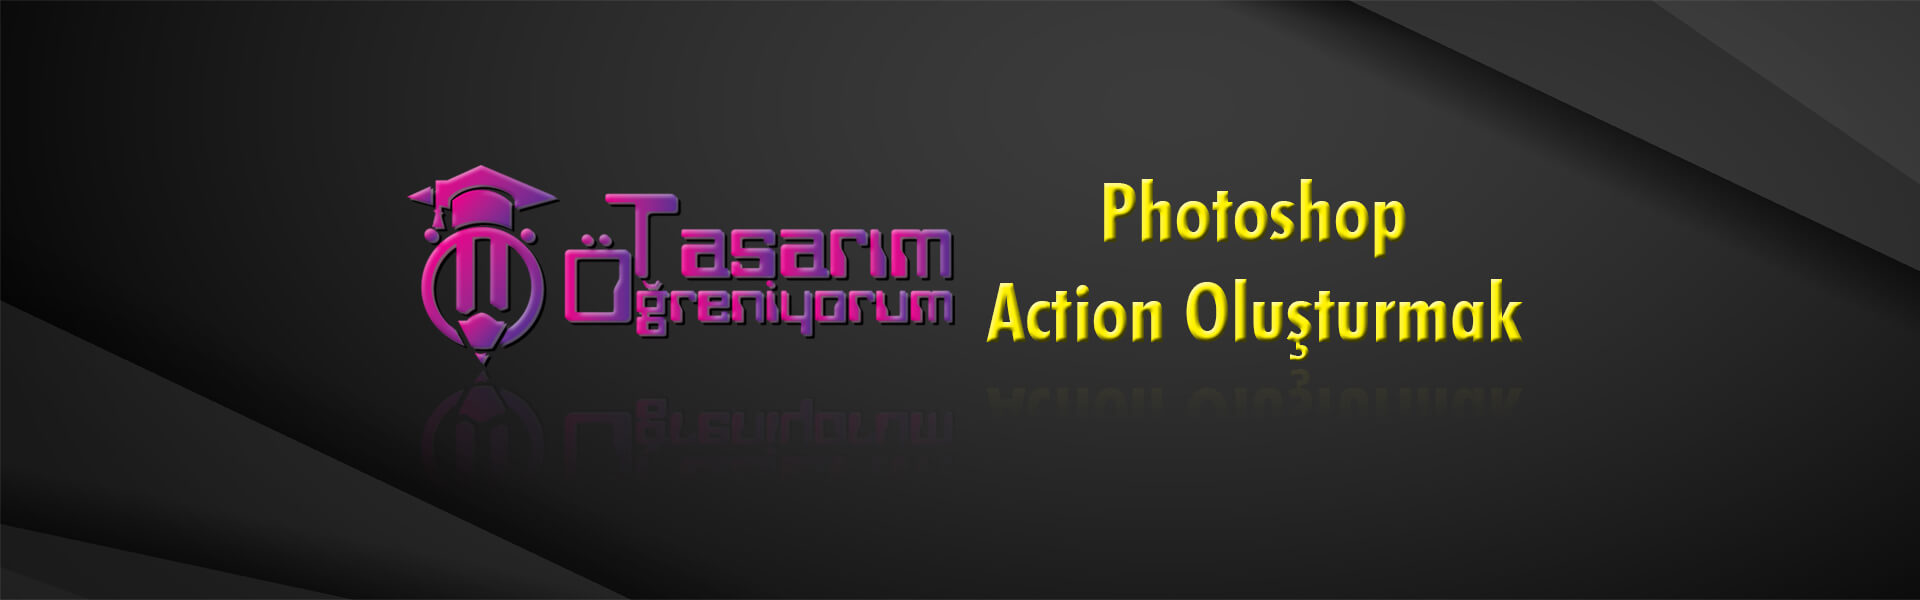 Photo of Photoshop'da Action Oluşturmak